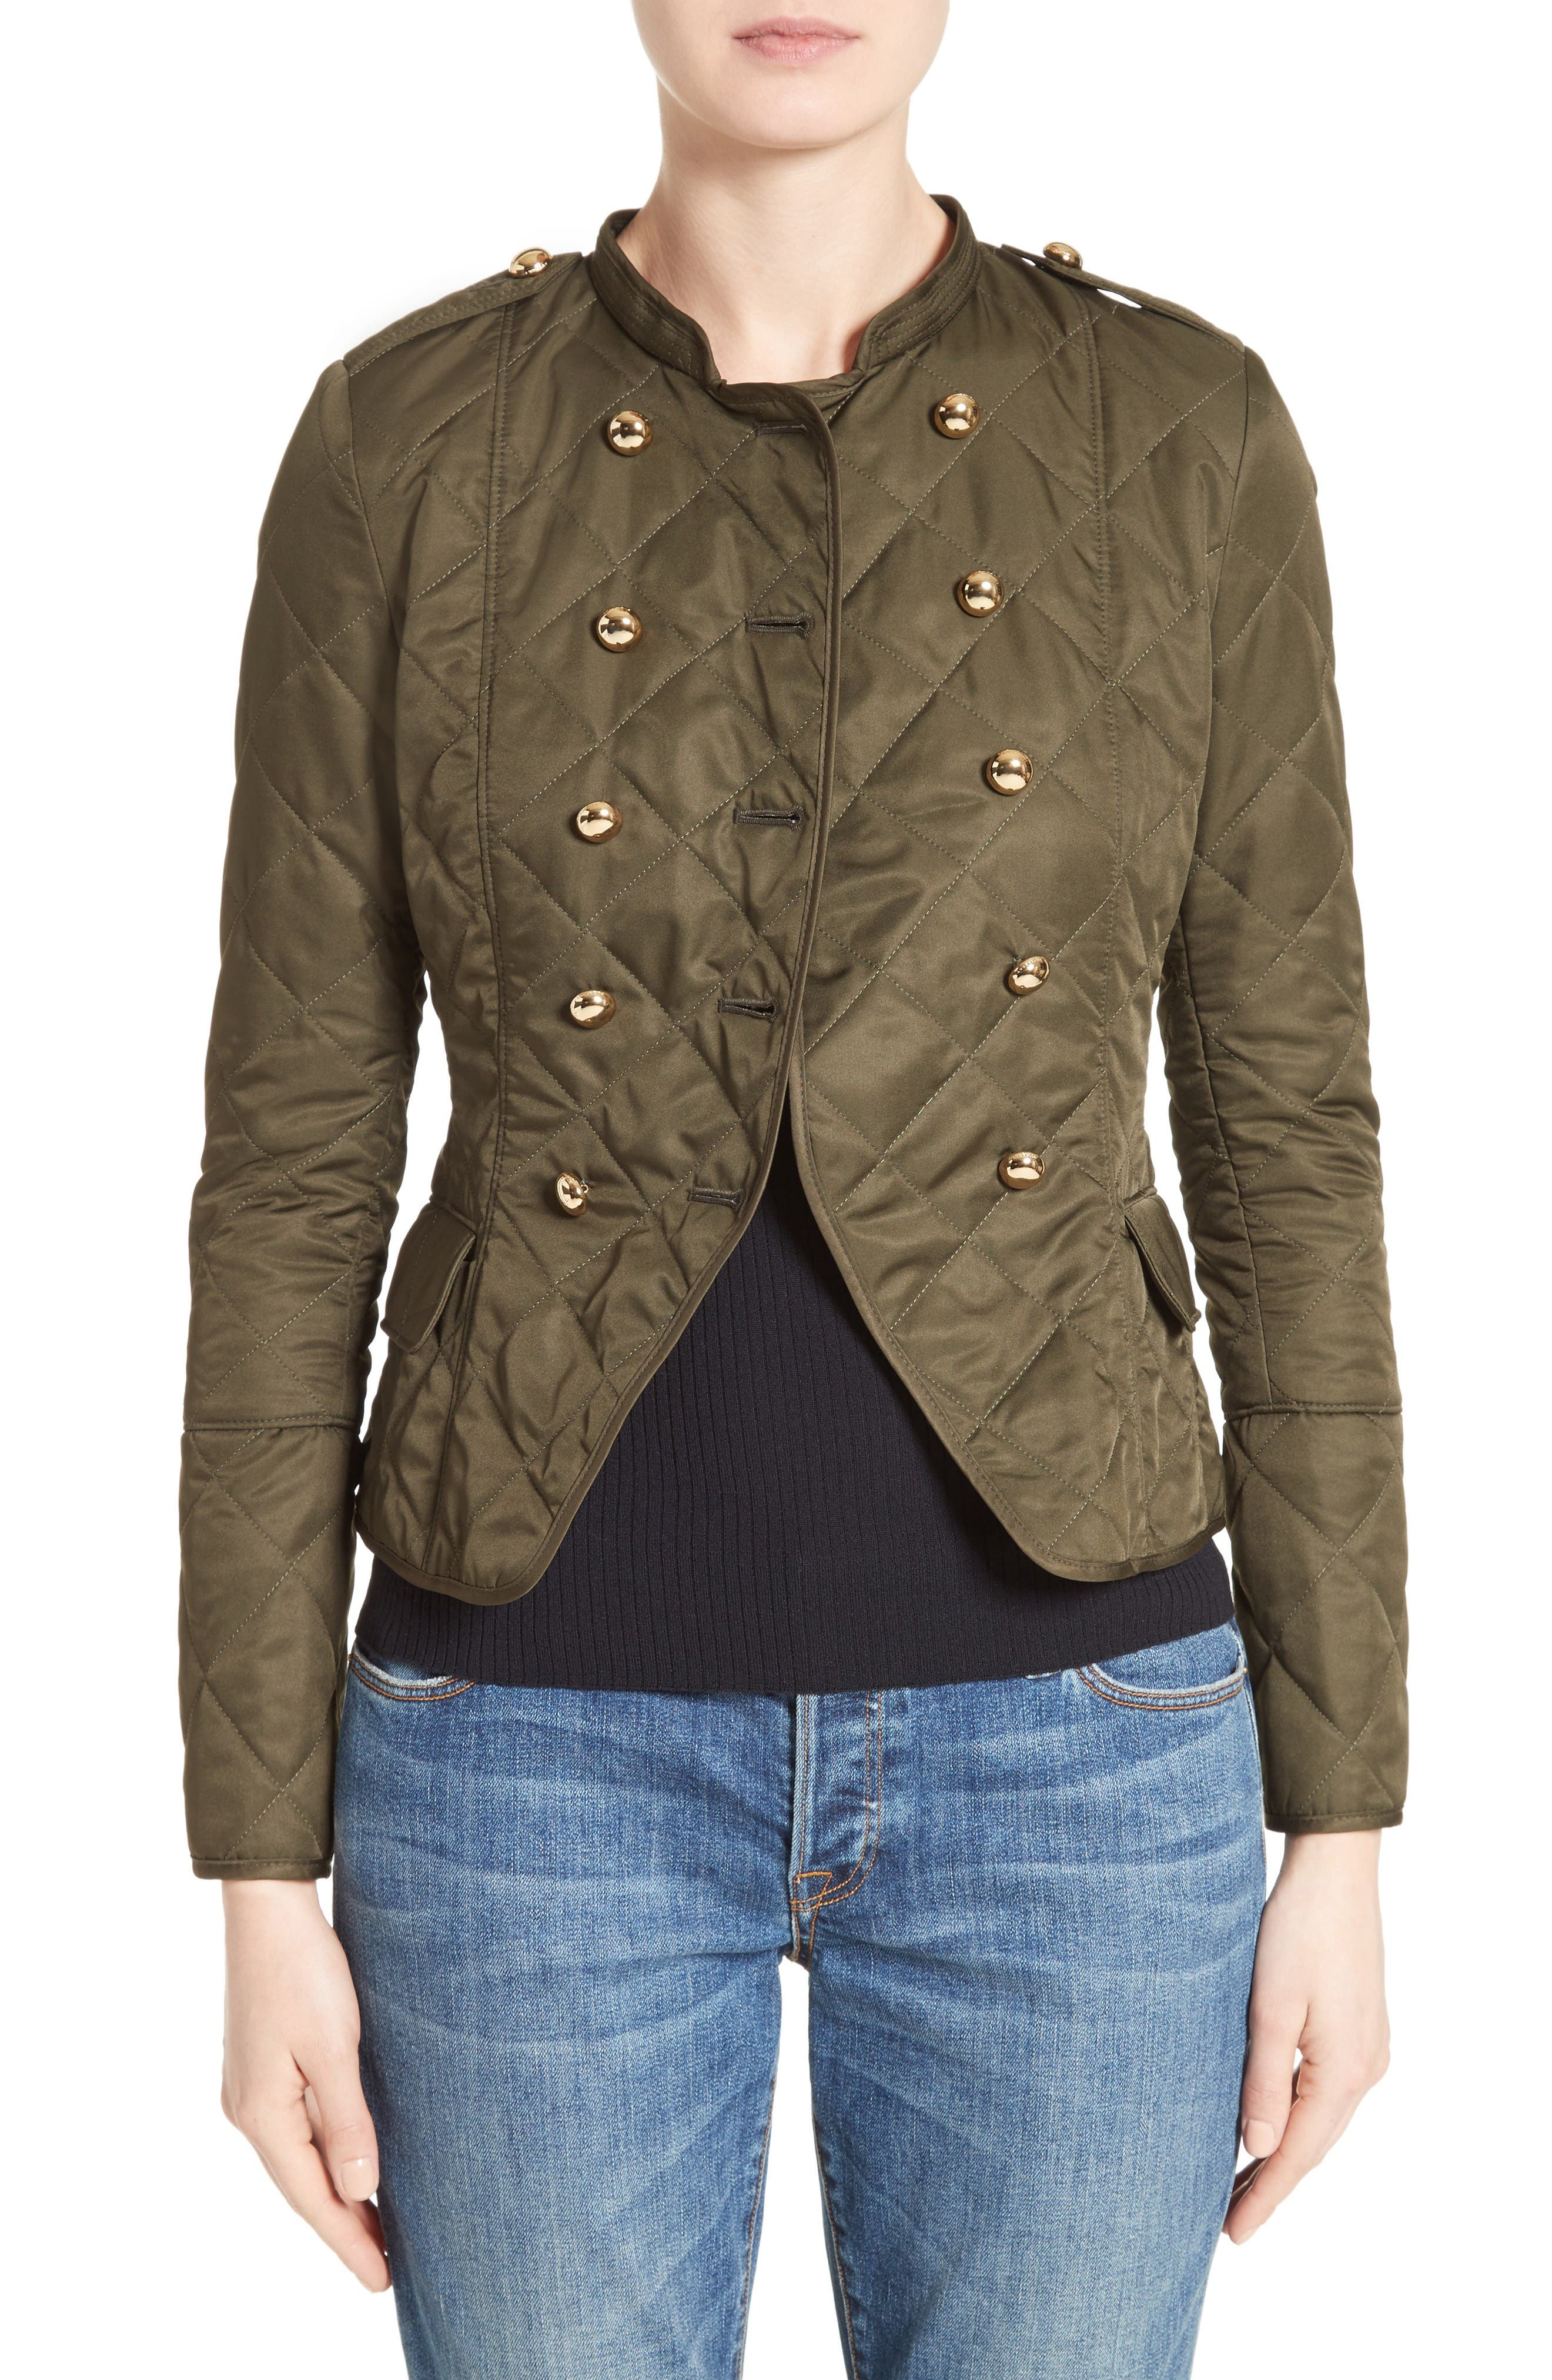 Boscastle Quilted Military Jacket,                         Main,                         color, Dark Olive